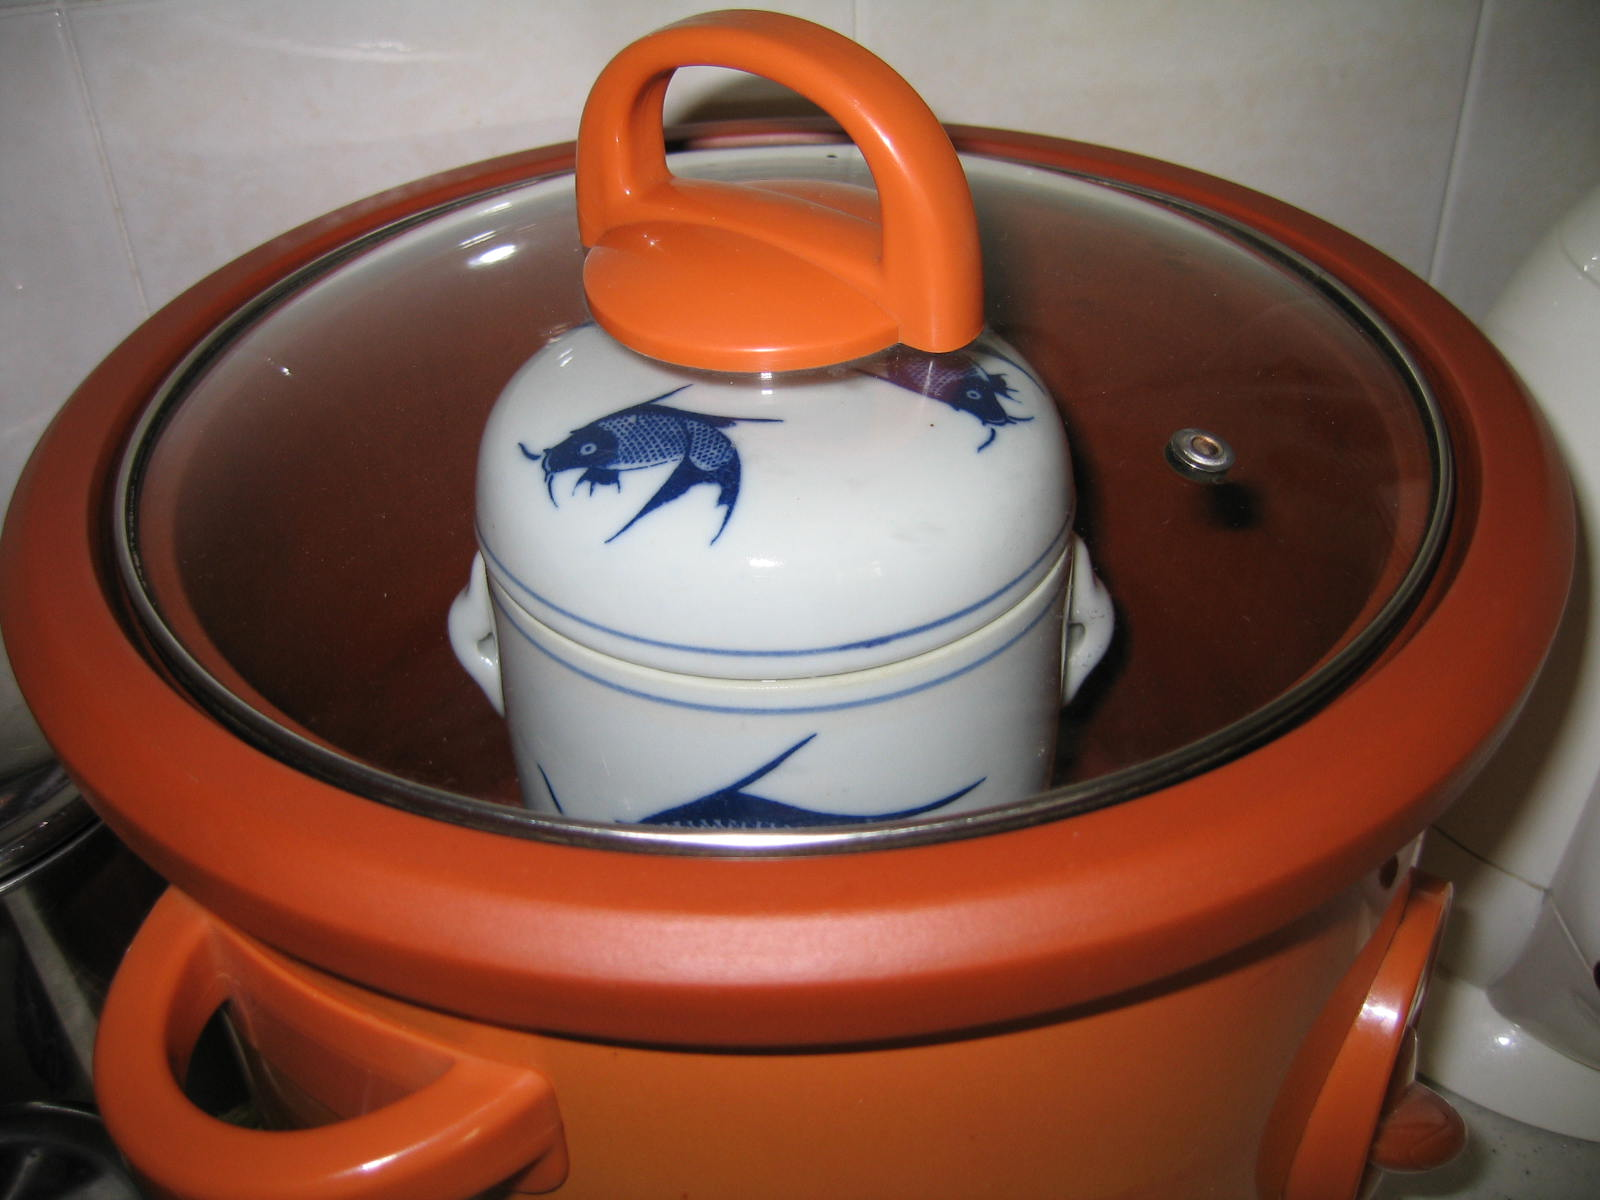 ceramic jar in a slow cooker